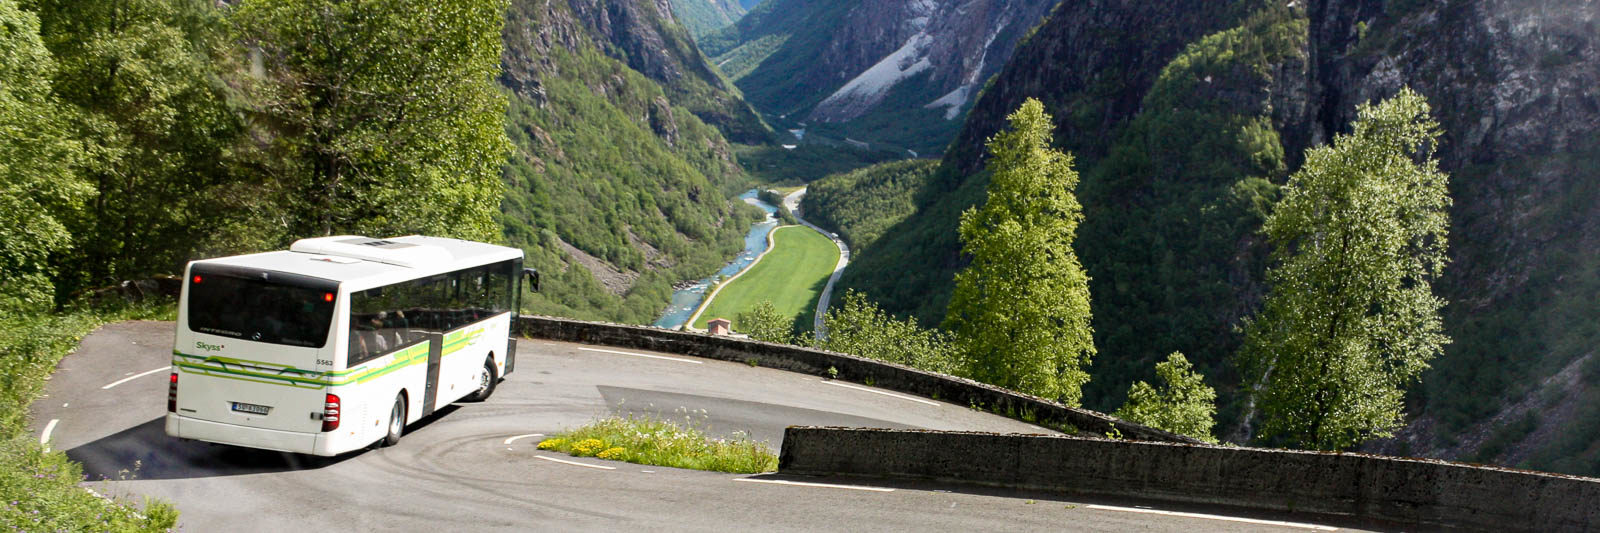 Where will your next travel destination take you? This is Voss Norway.